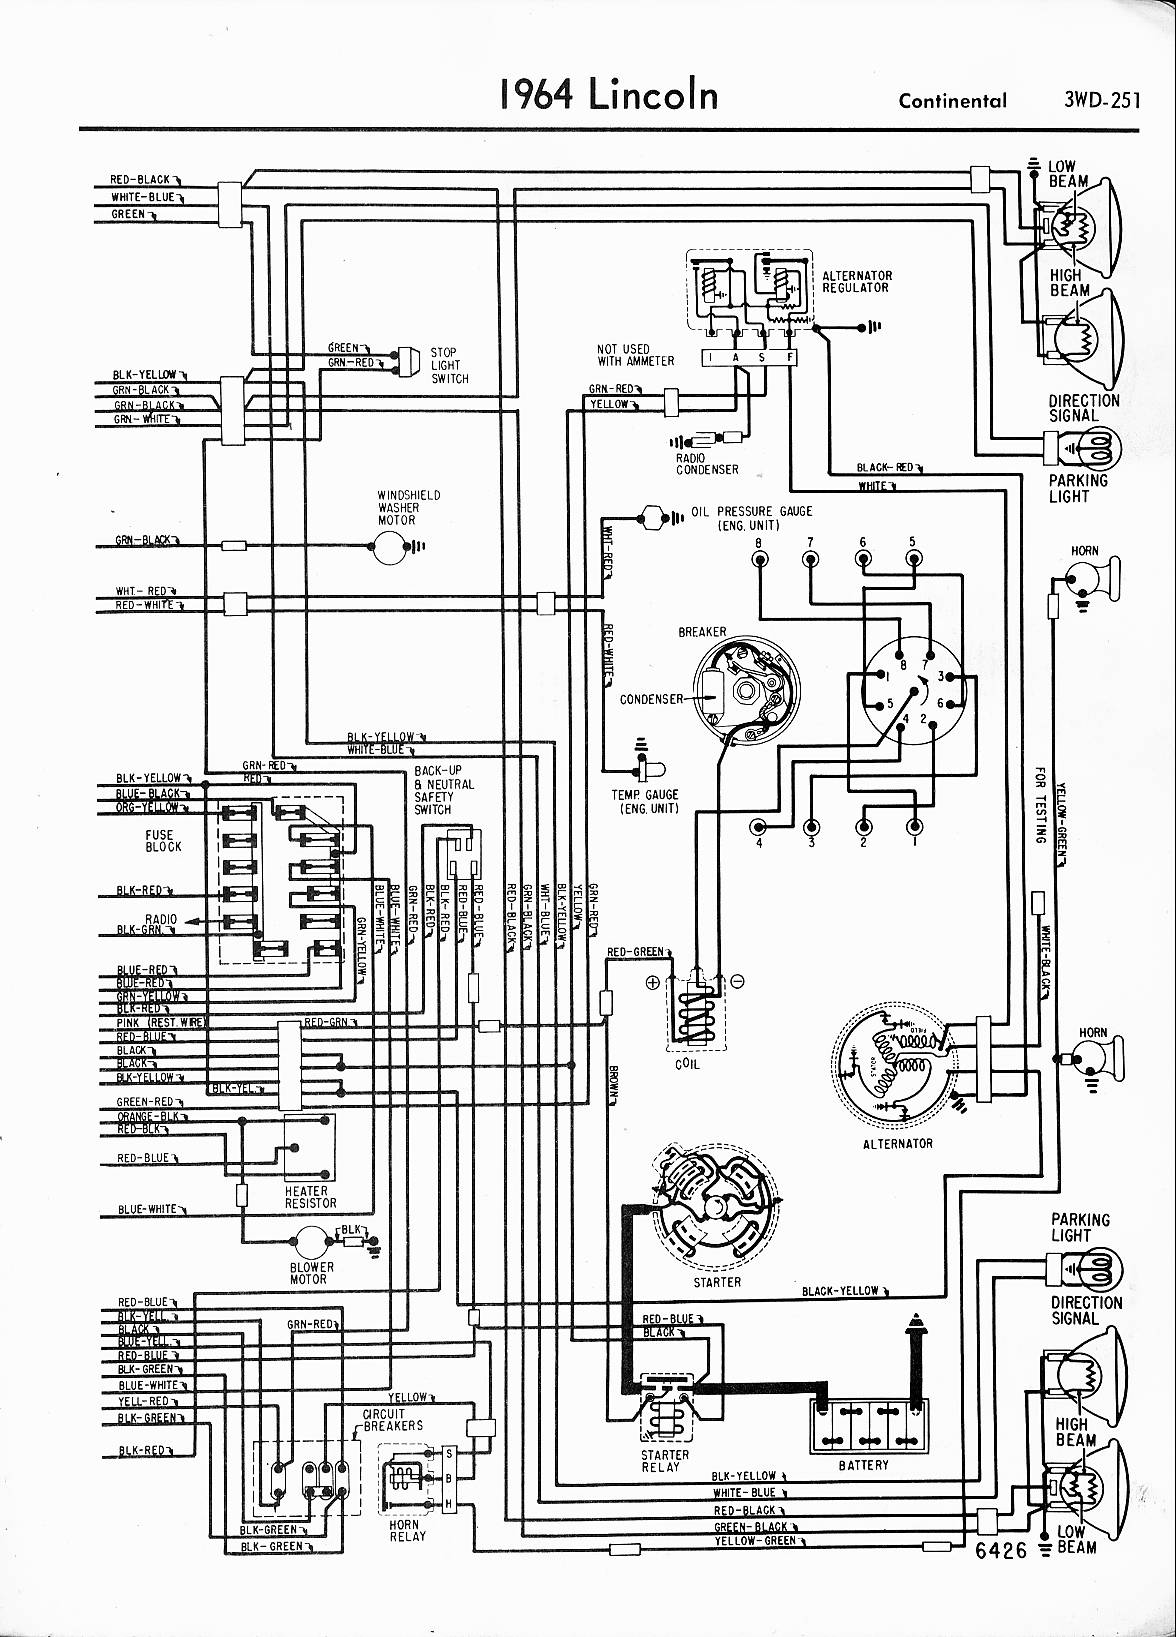 1964 Lincoln Power Window Wiring Diagram Worksheet And 2001 Chevy Impala Diagrams 1957 1965 Rh Oldcarmanualproject Com 5 Pin Switch 2012 Silverado